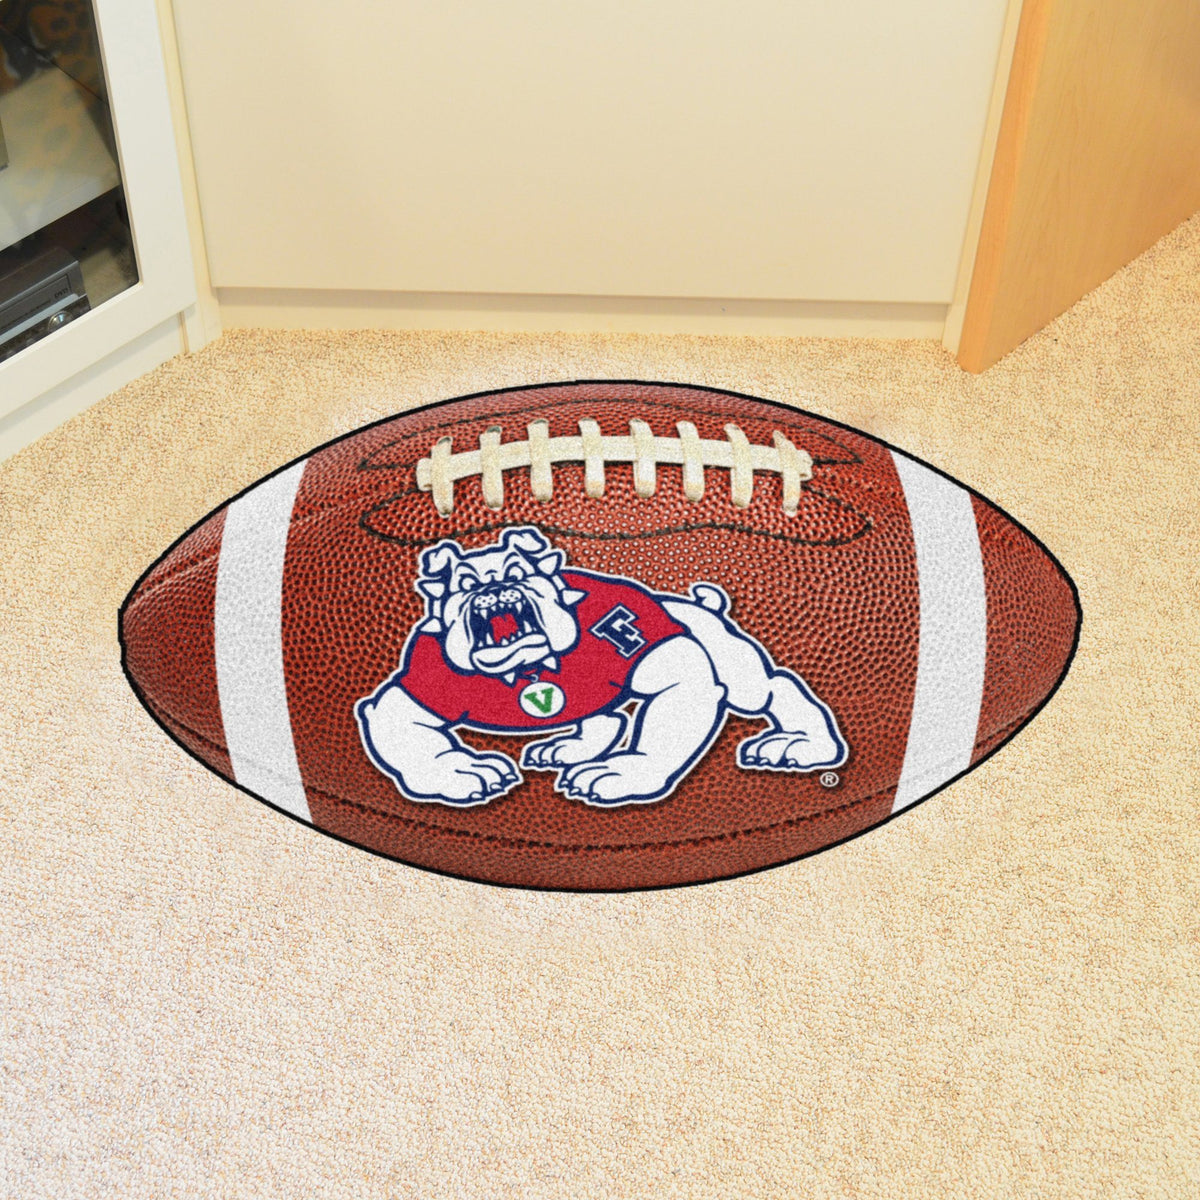 Collegiate - Football Mat: A - K Collegiate Mats, Rectangular Mats, Football Mat, Collegiate, Home Fan Mats Fresno State